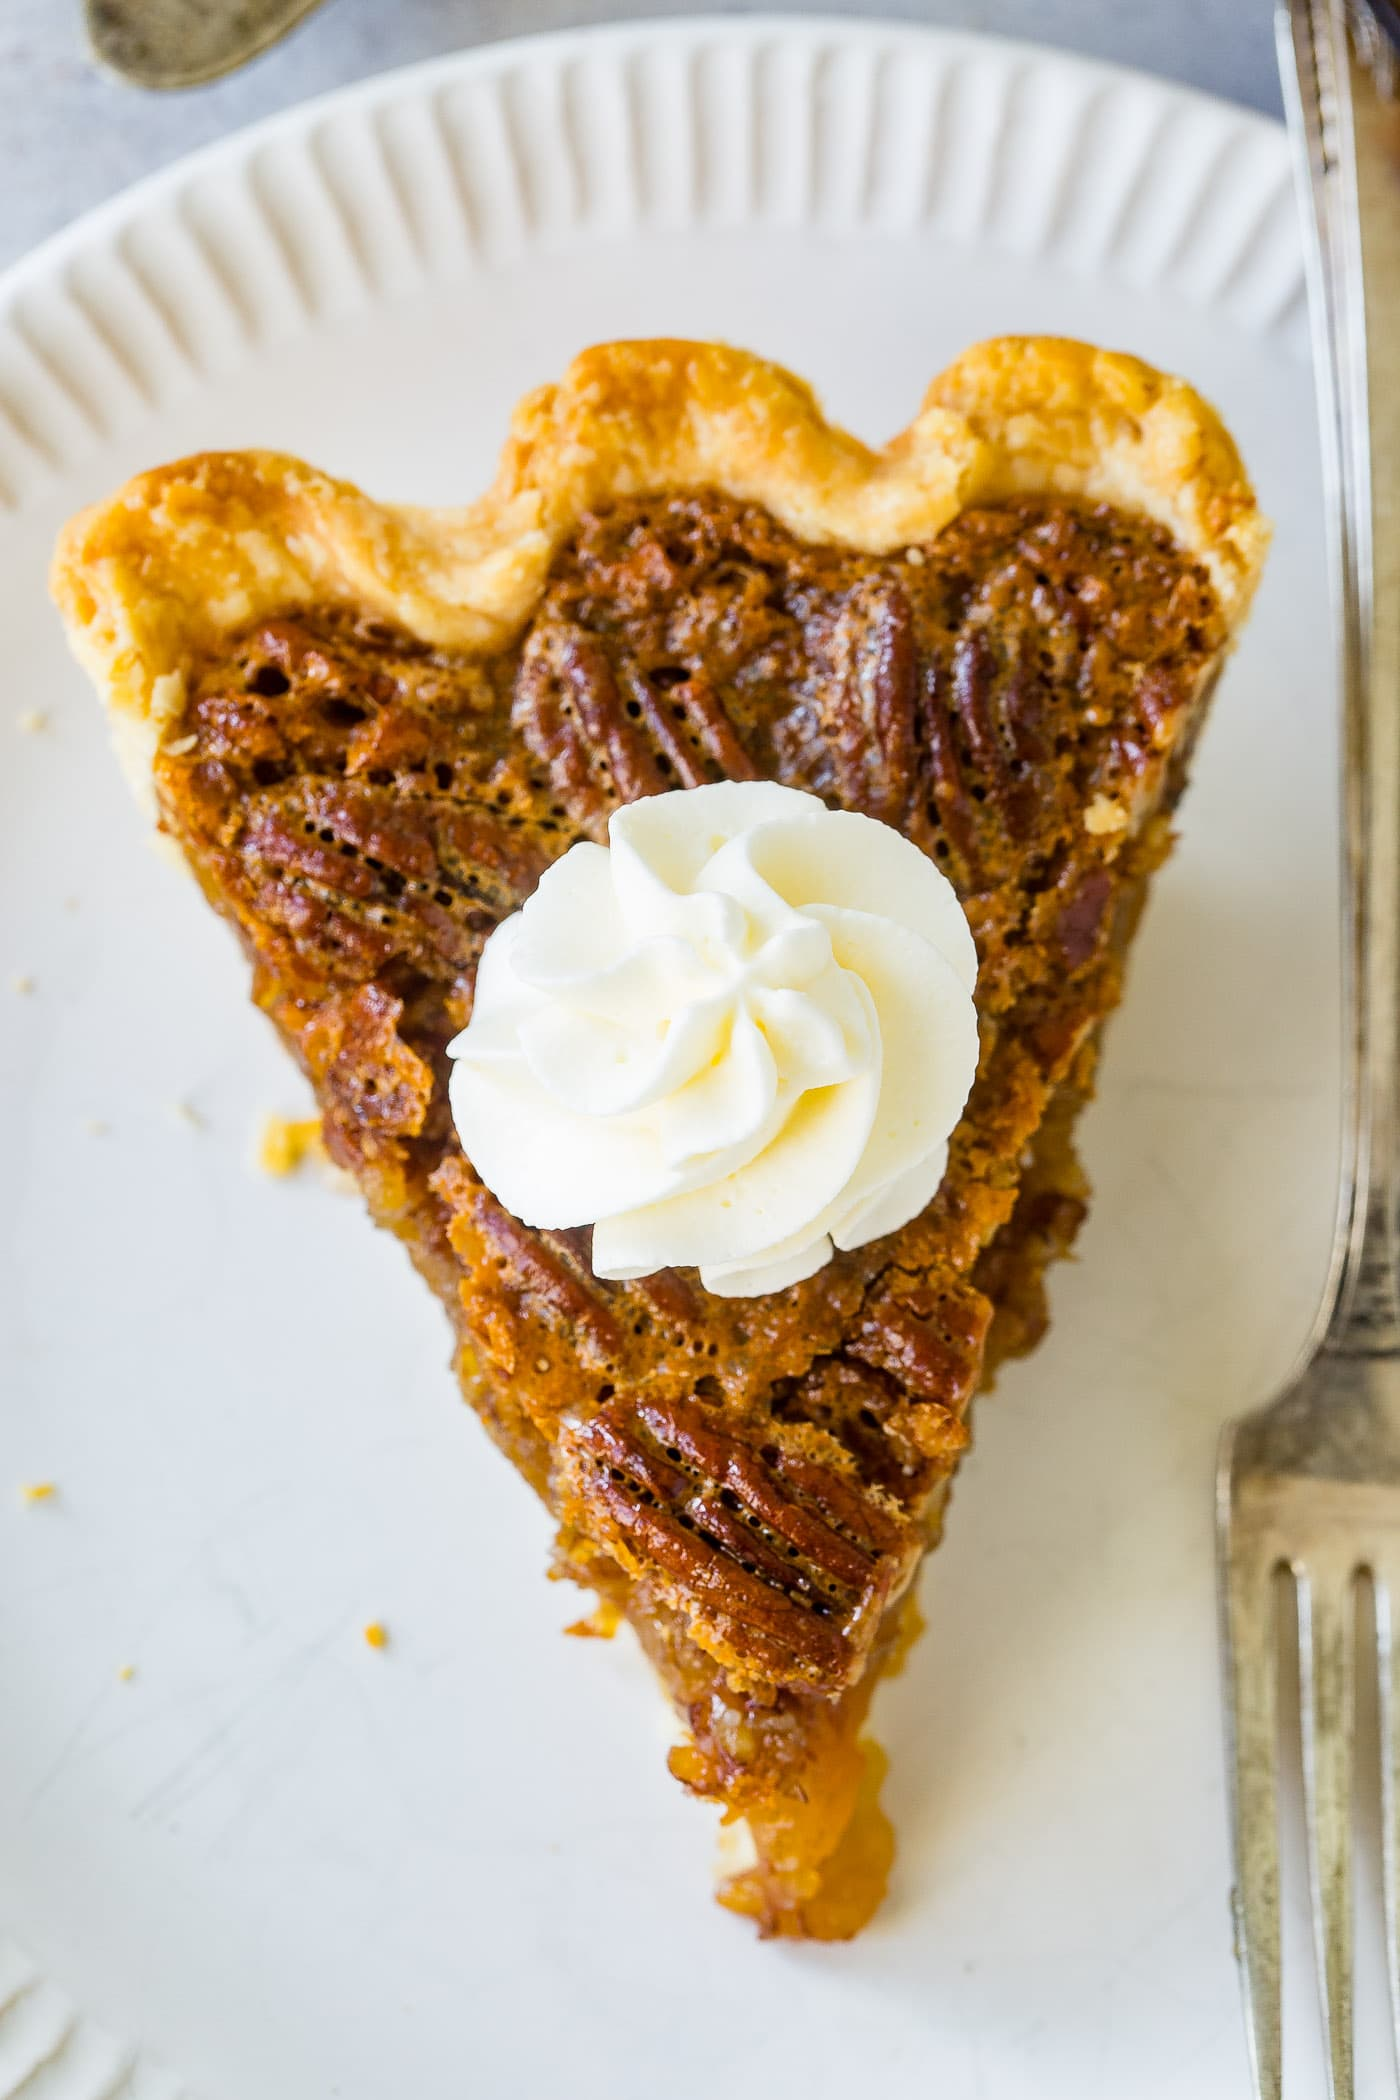 A photo of a slice of pecan pie taken from overhead.